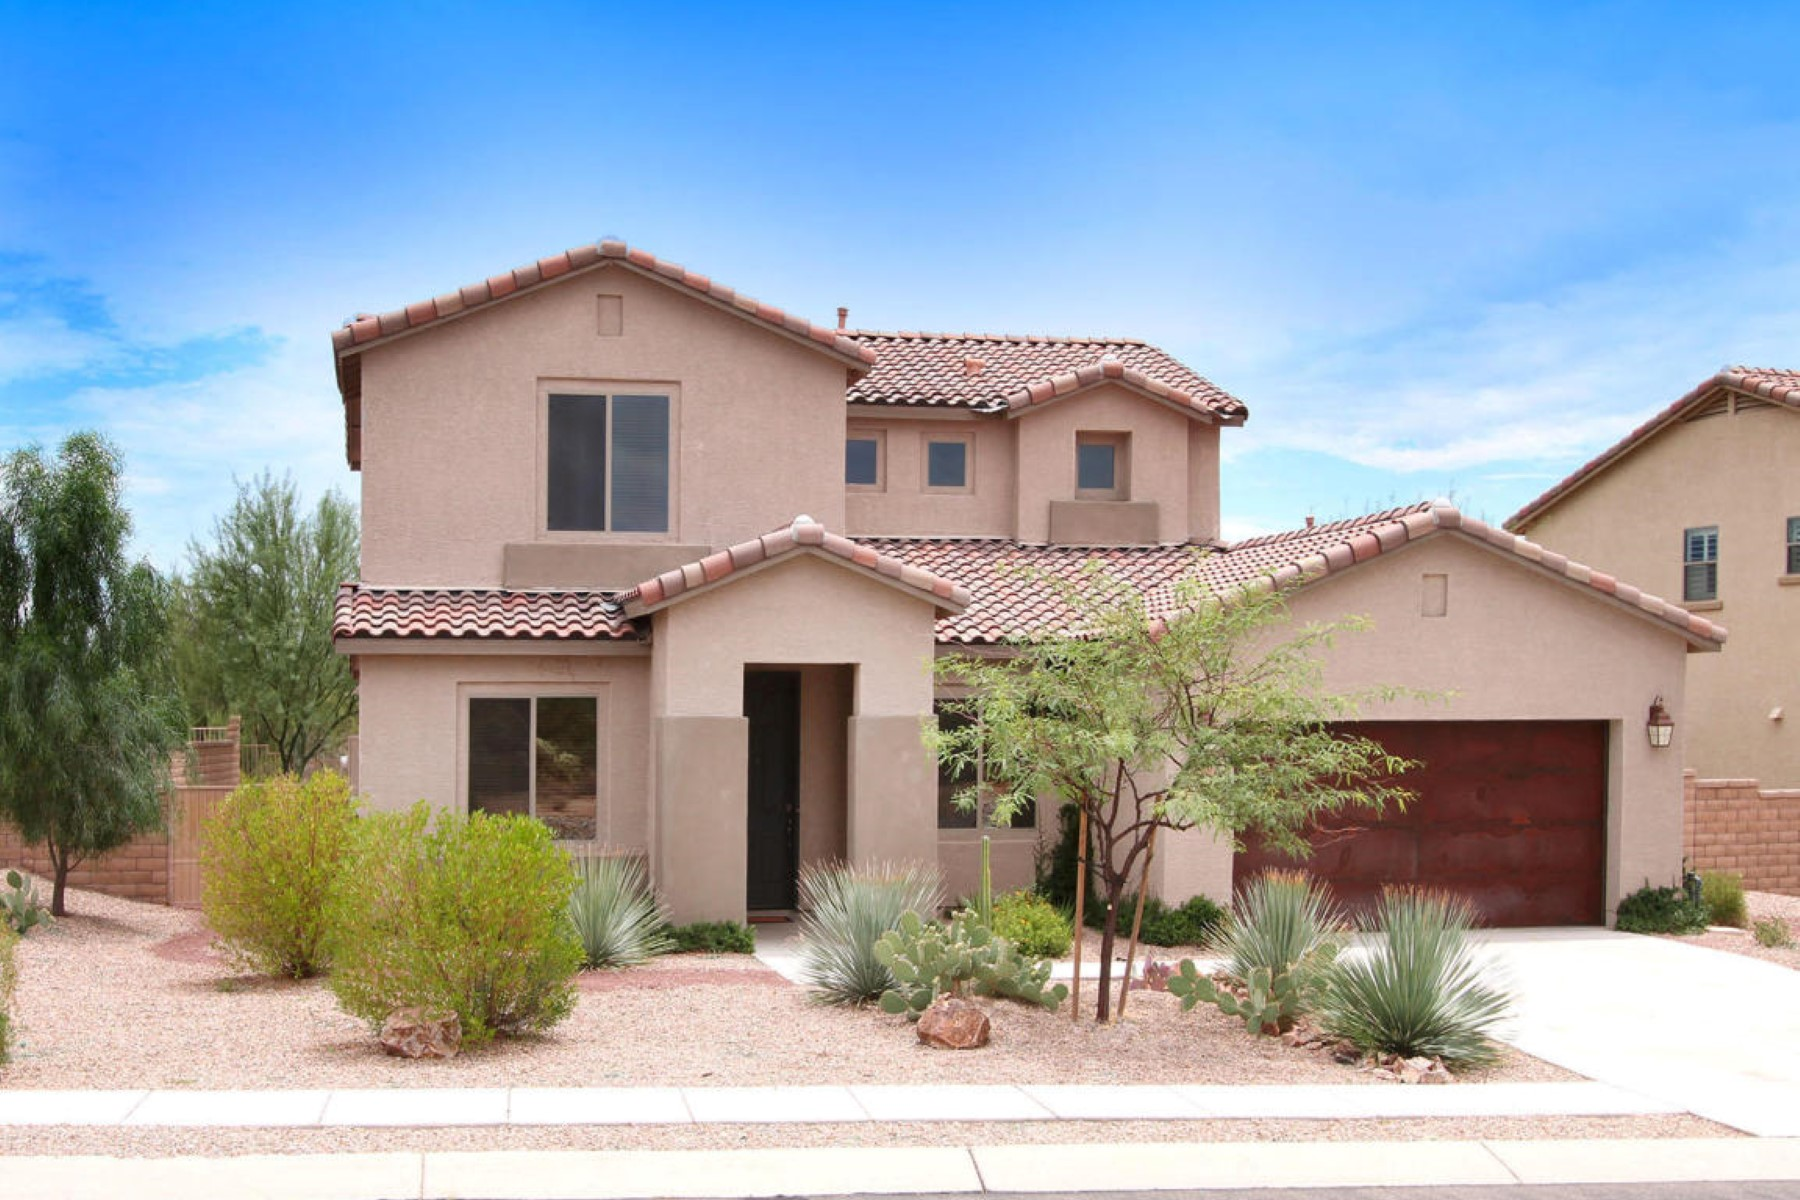 Single Family Home for Sale at Stunning Meritage home is located in the Desirable gated Sky Ranch. 11466 N Adobe Village Place Marana, Arizona 85658 United States